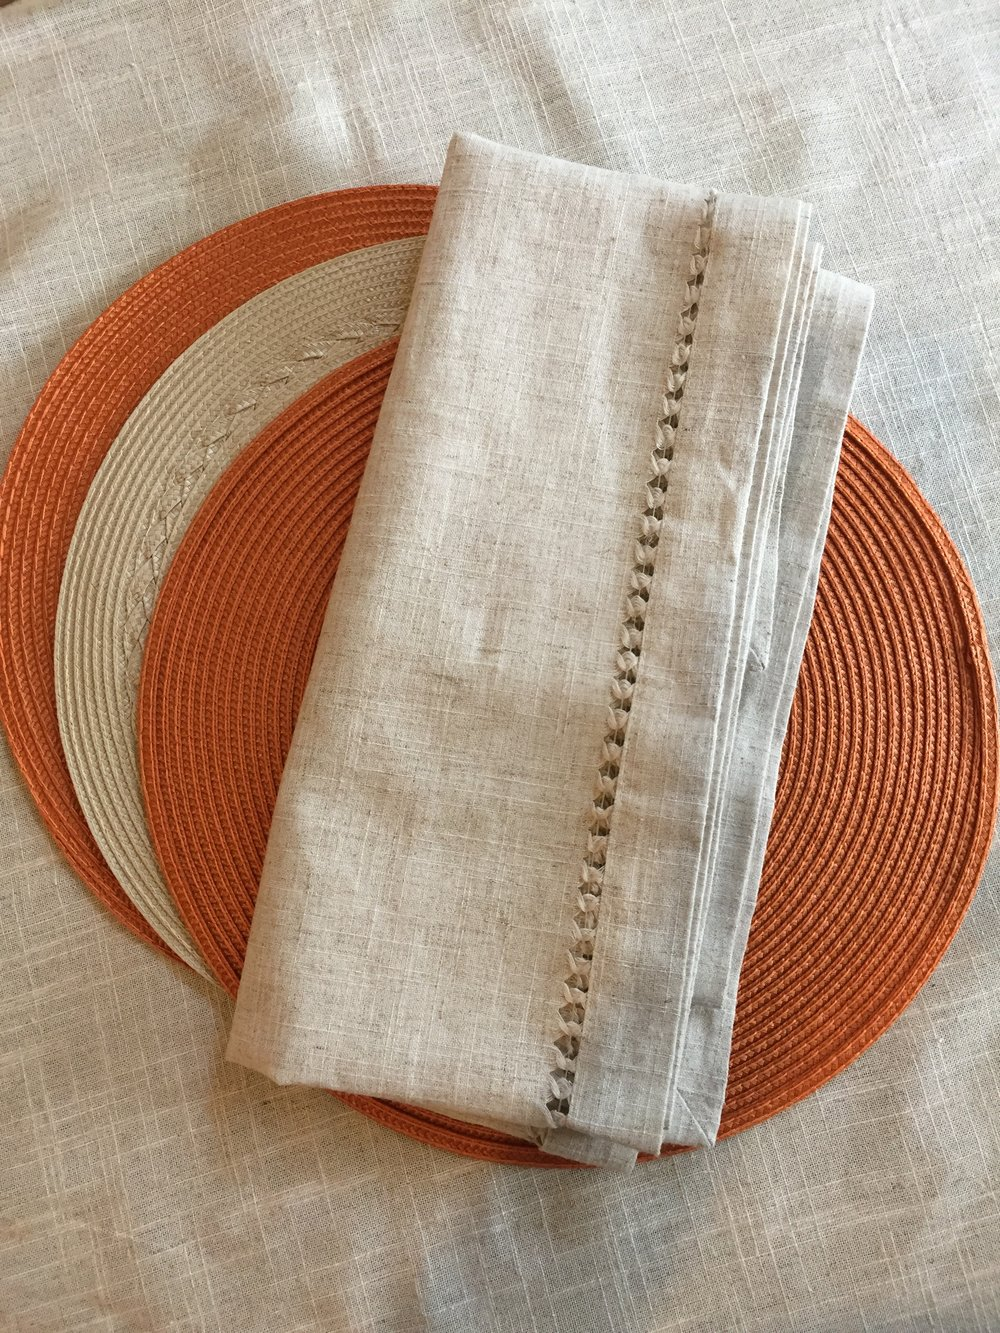 USE 4-6 PLACEMATS & NAPKINS WITH 1 TABLE RUNNER